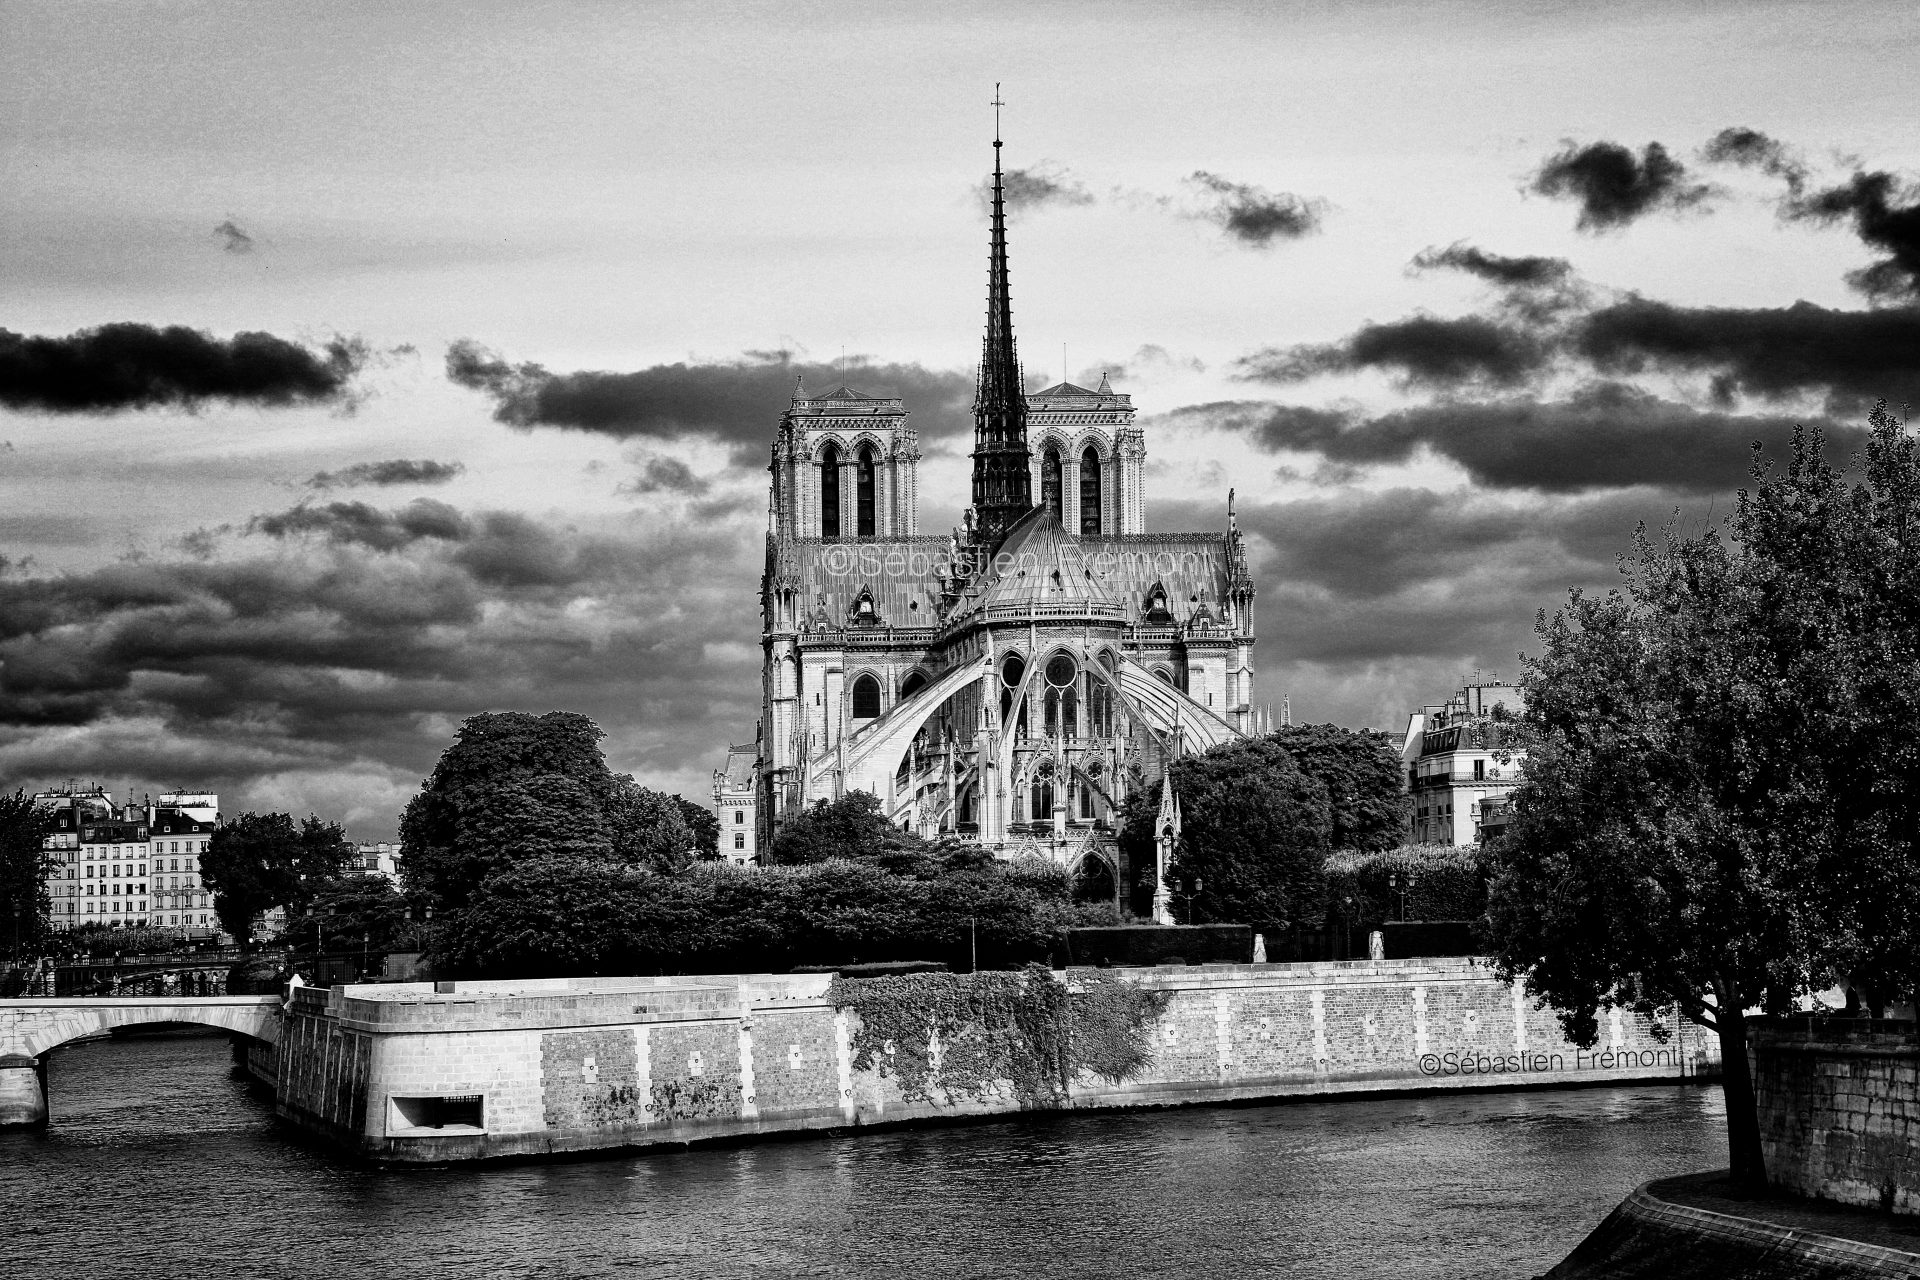 French Photographer Landscape Photography Paris / Notre-Dame de Paris